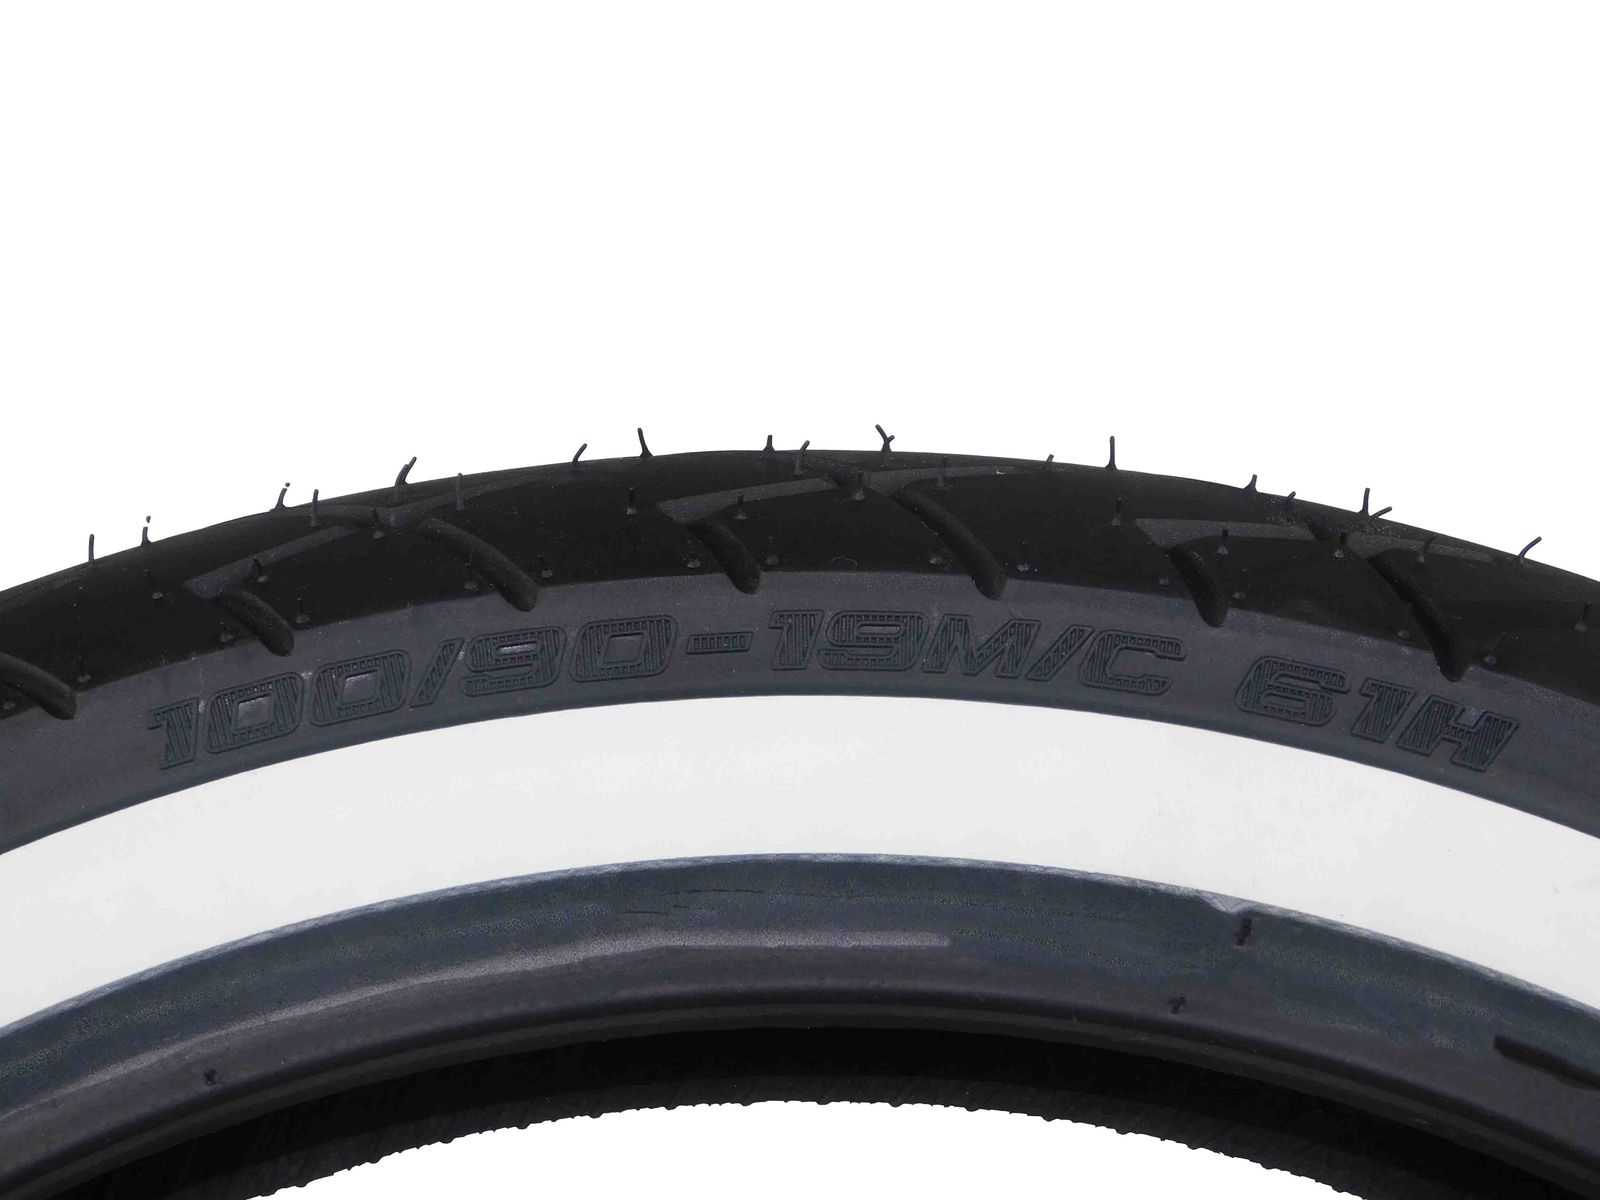 Full-Bore-100-90-19-Front-170-80-15-Rear-White-Wall-Motorcycle-Tires-image-5